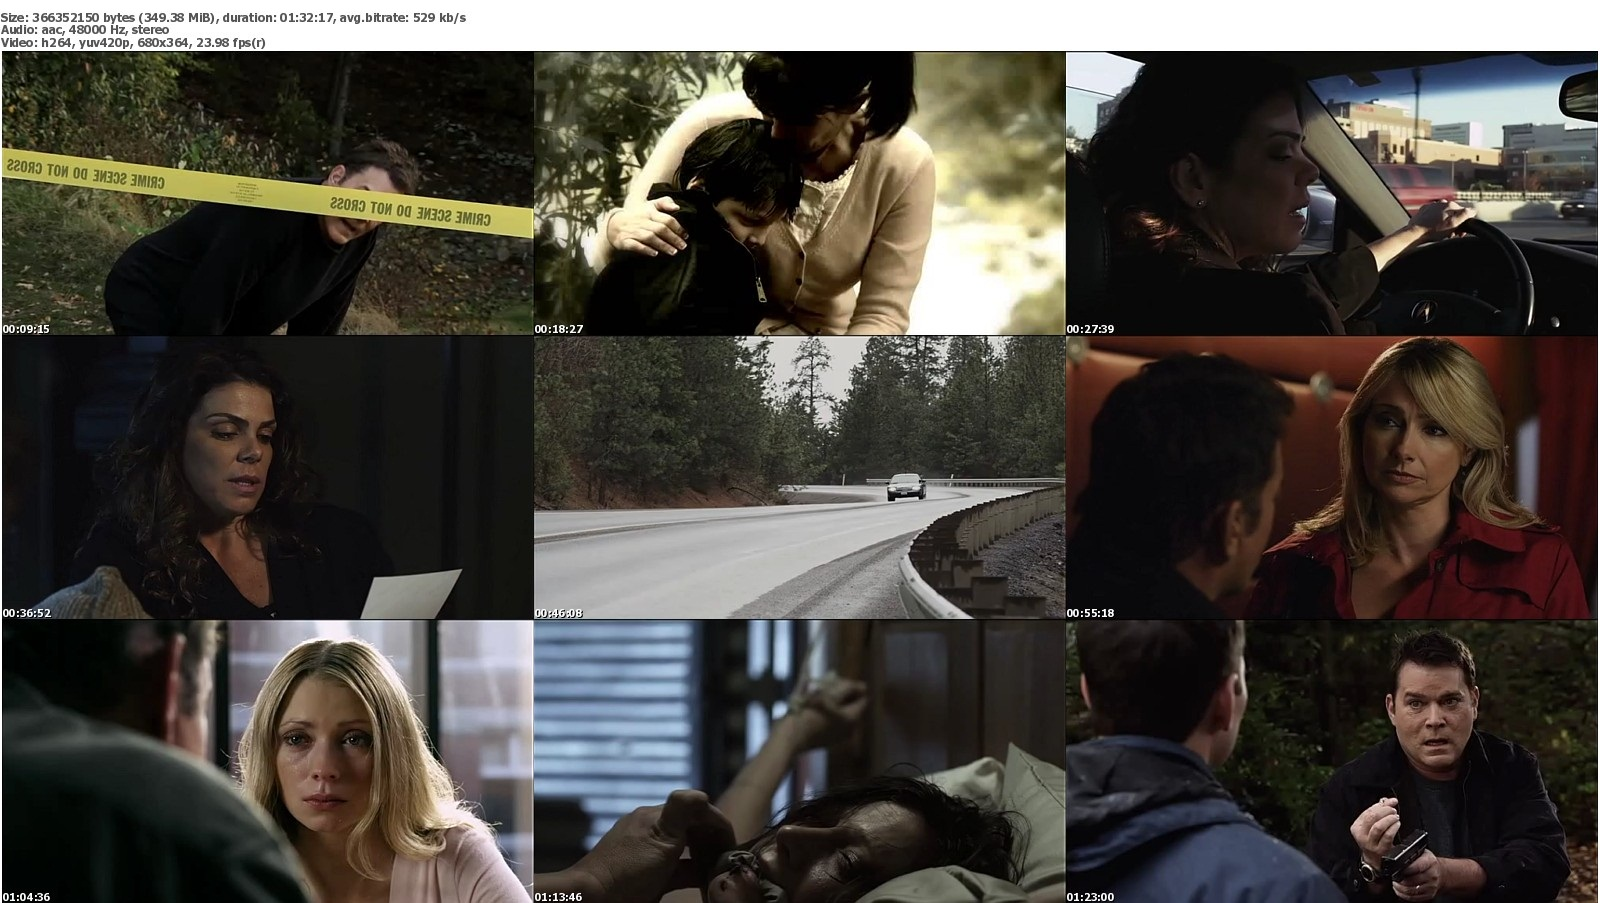 The river murders 2011 dvdrip 350mb mediafire movie download link